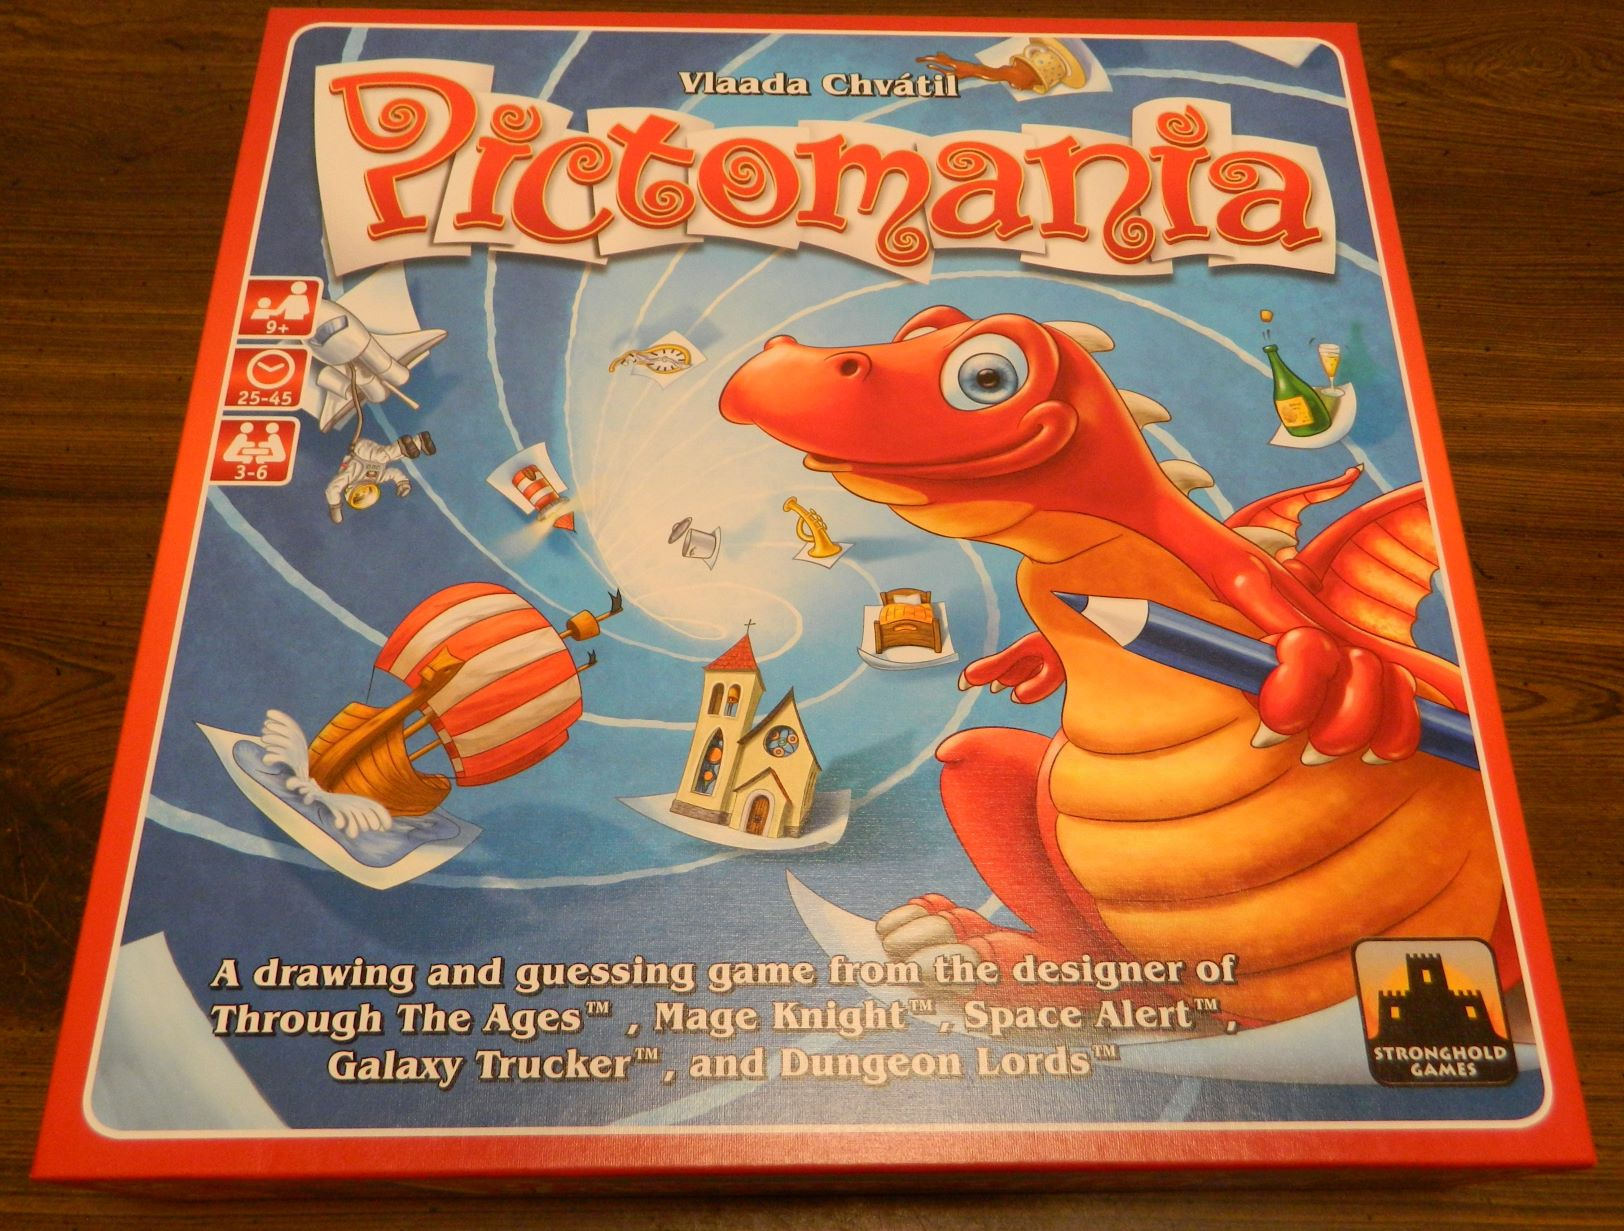 Box for Pictomania